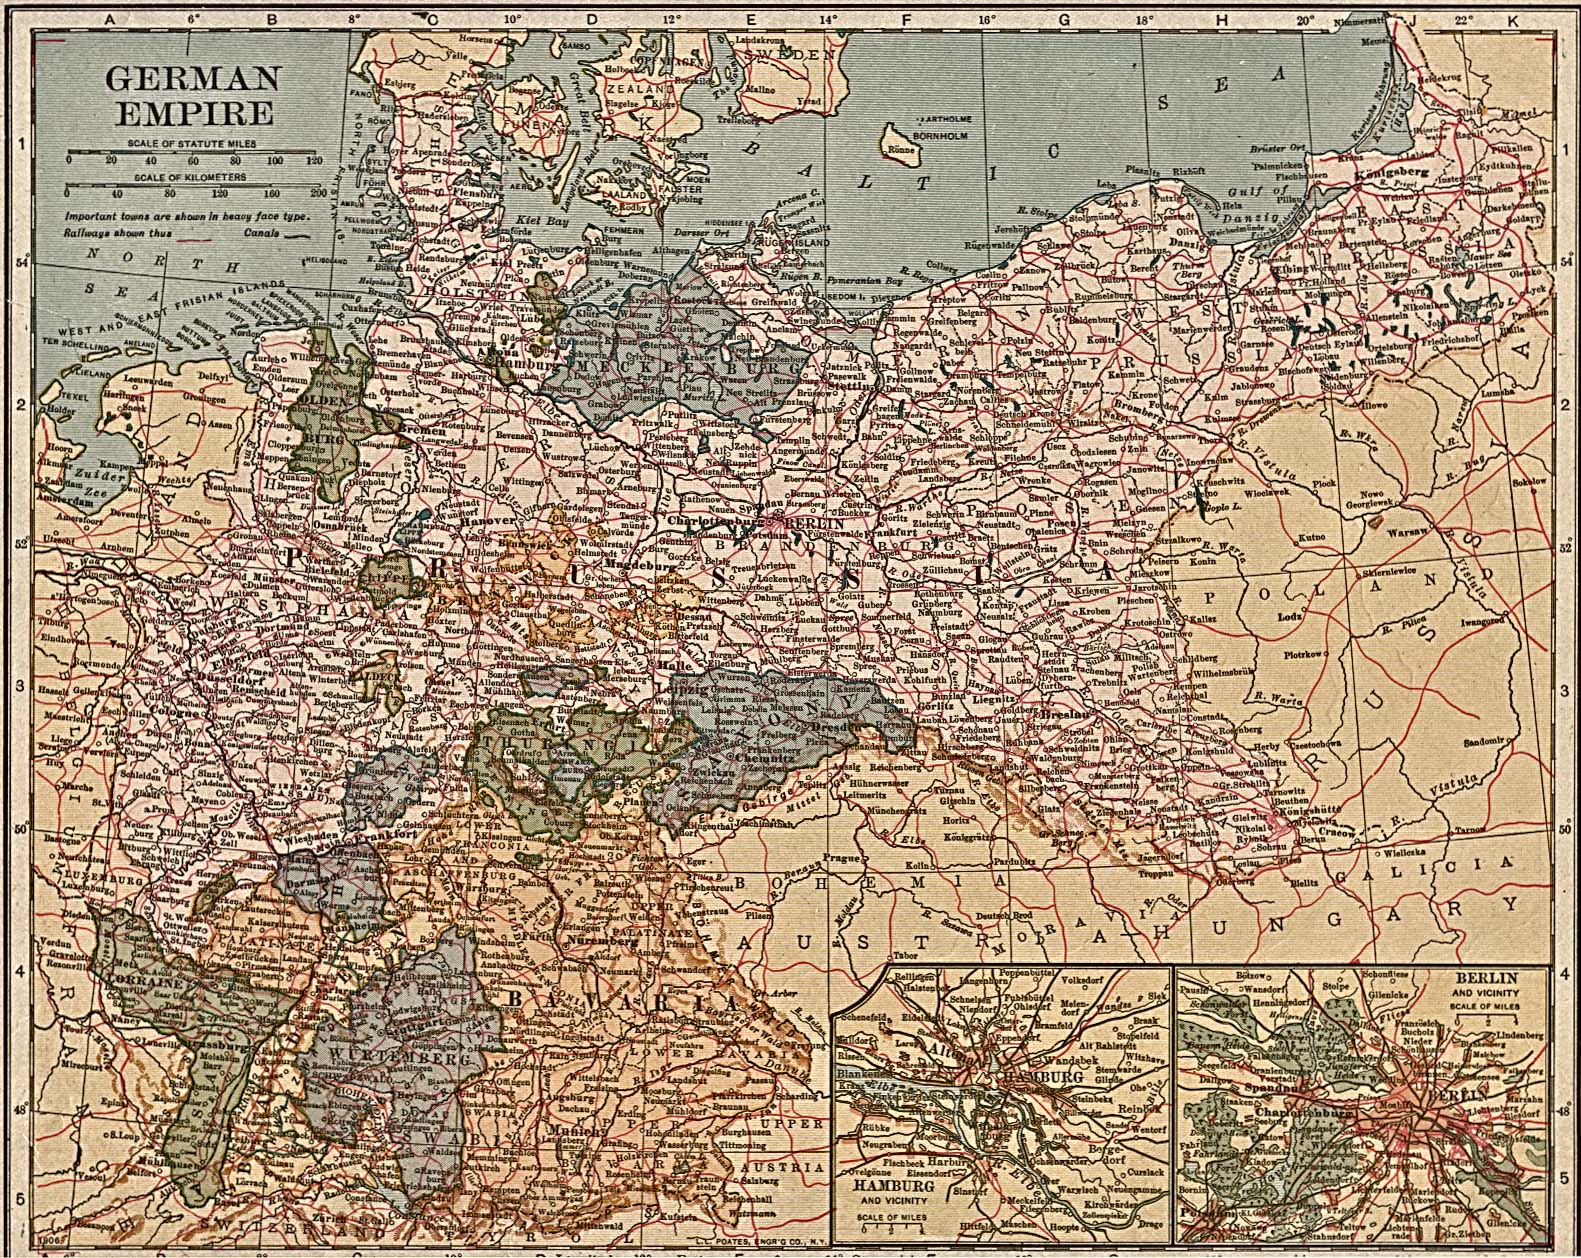 German Empire 1871-1918 - Full size